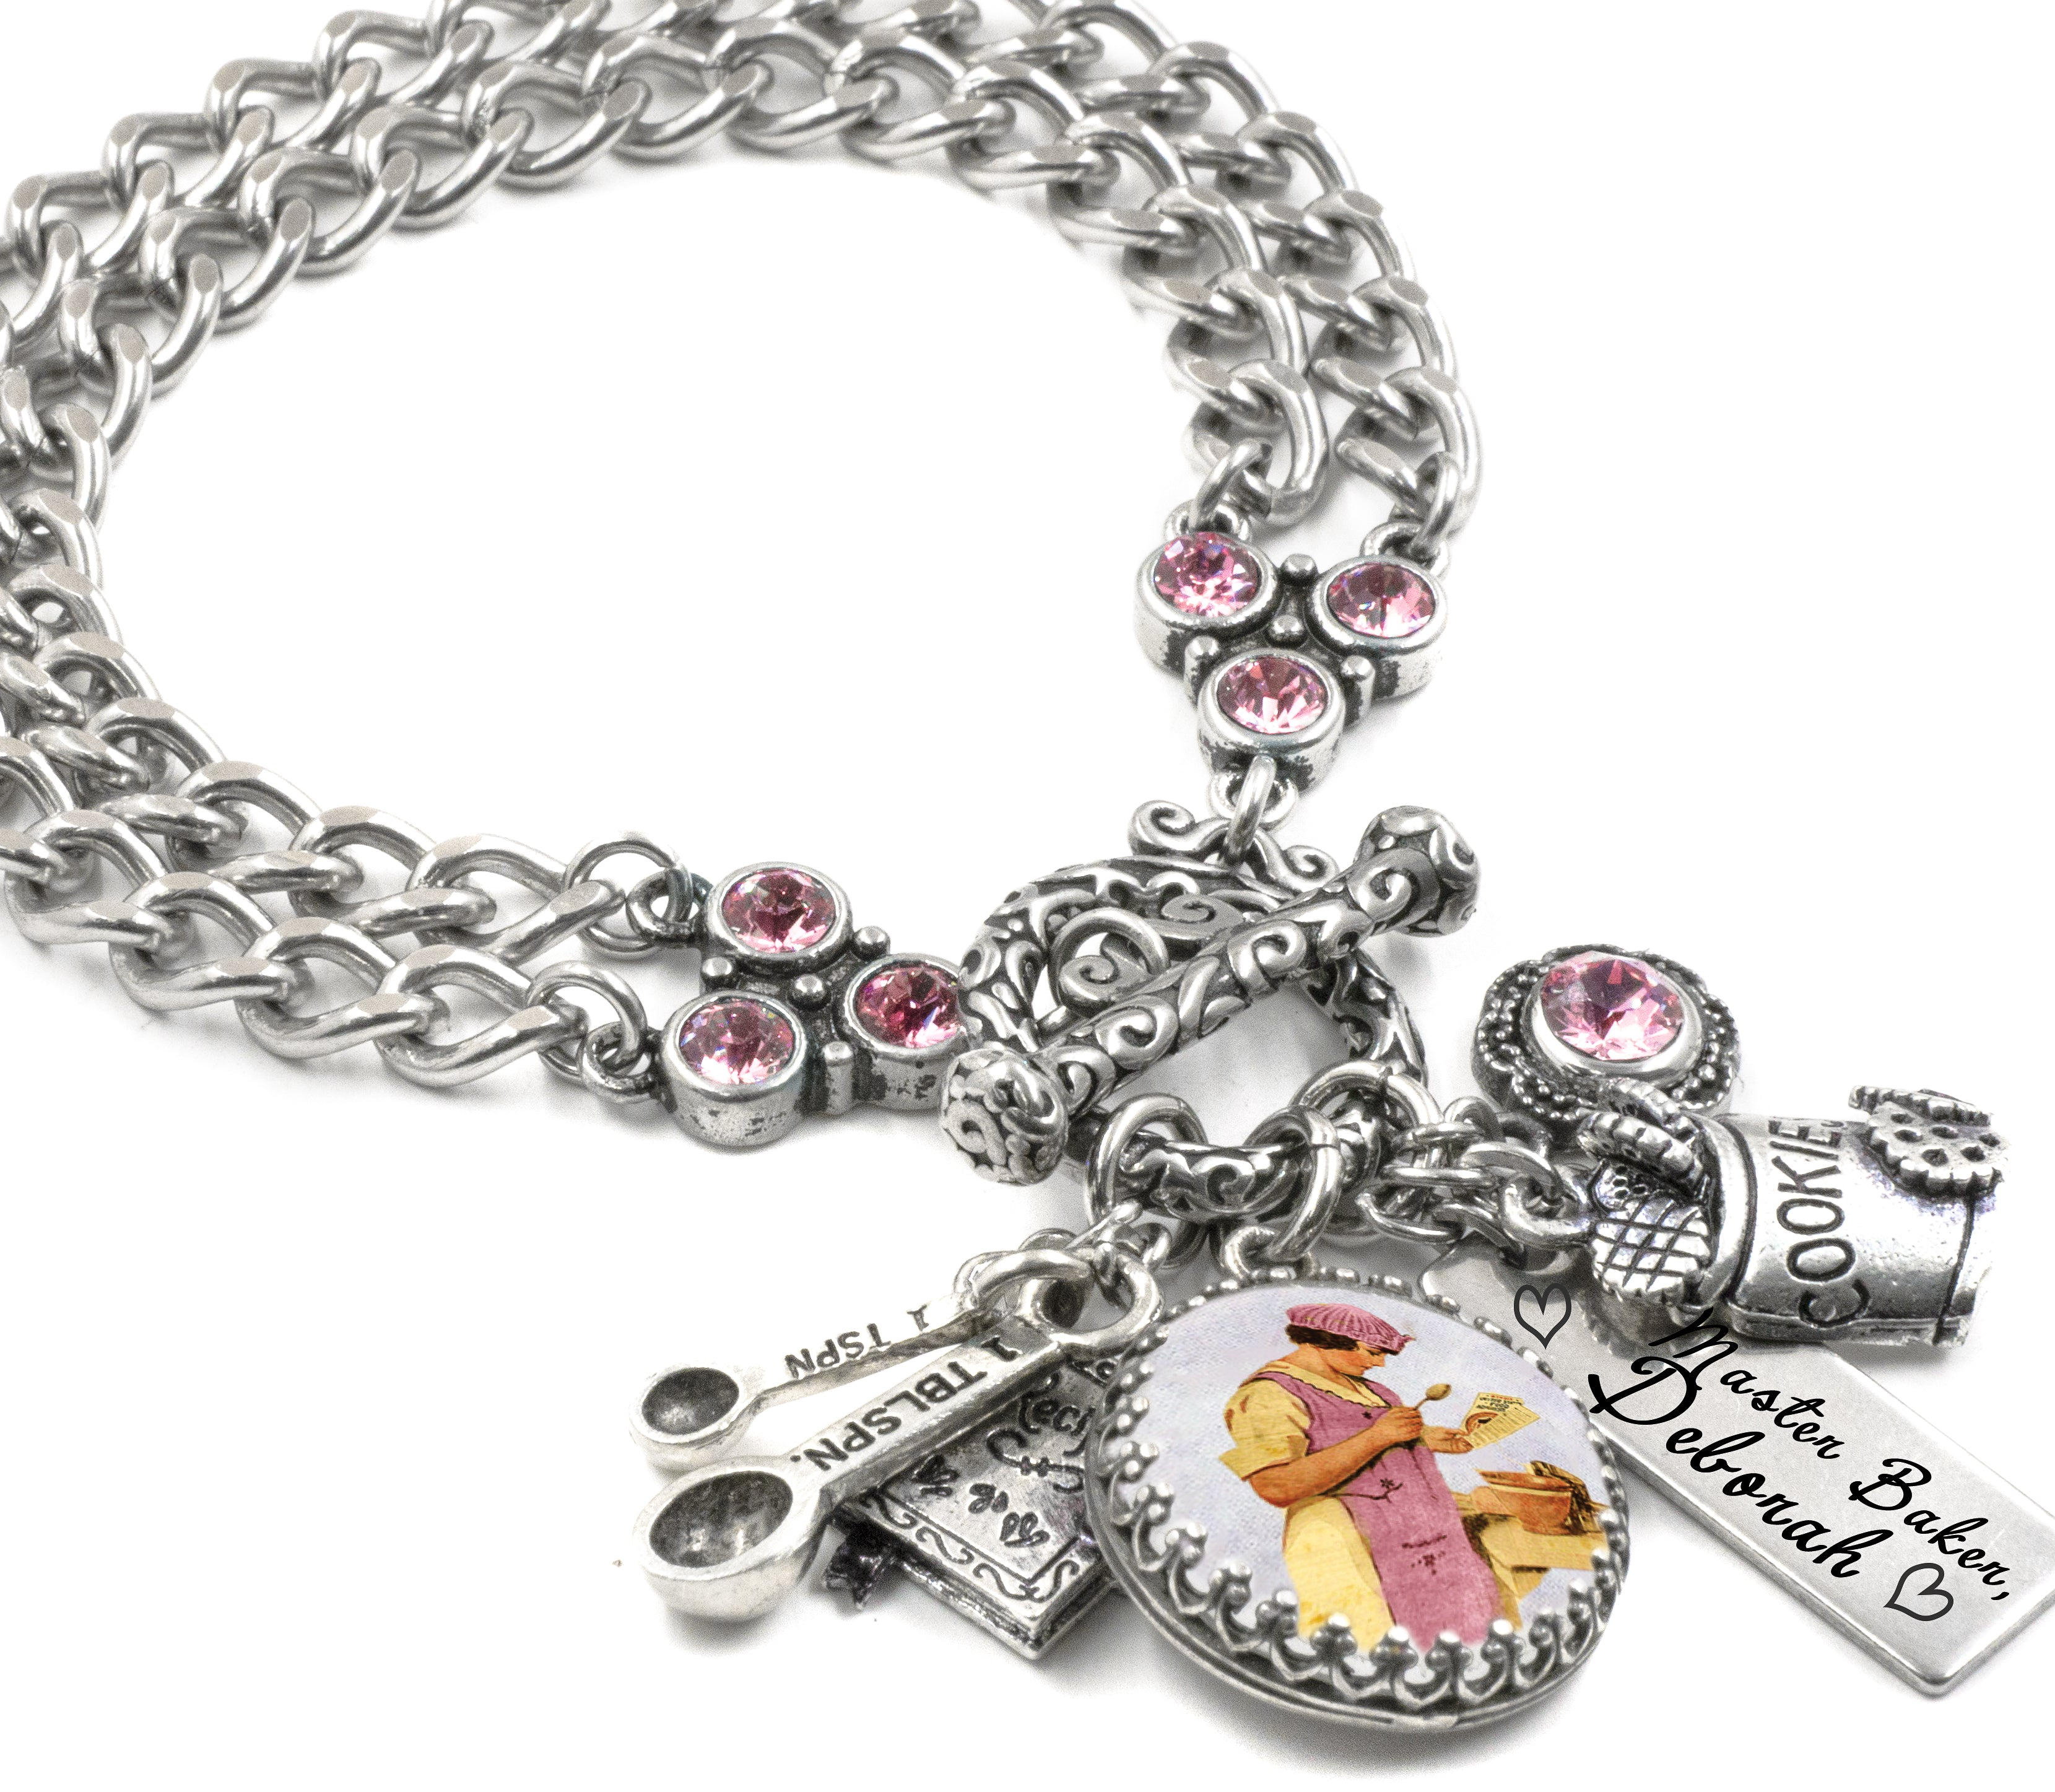 335983110 Gift for Baker, Baking Charm Bracelet, Personalized Name Jewelry ...